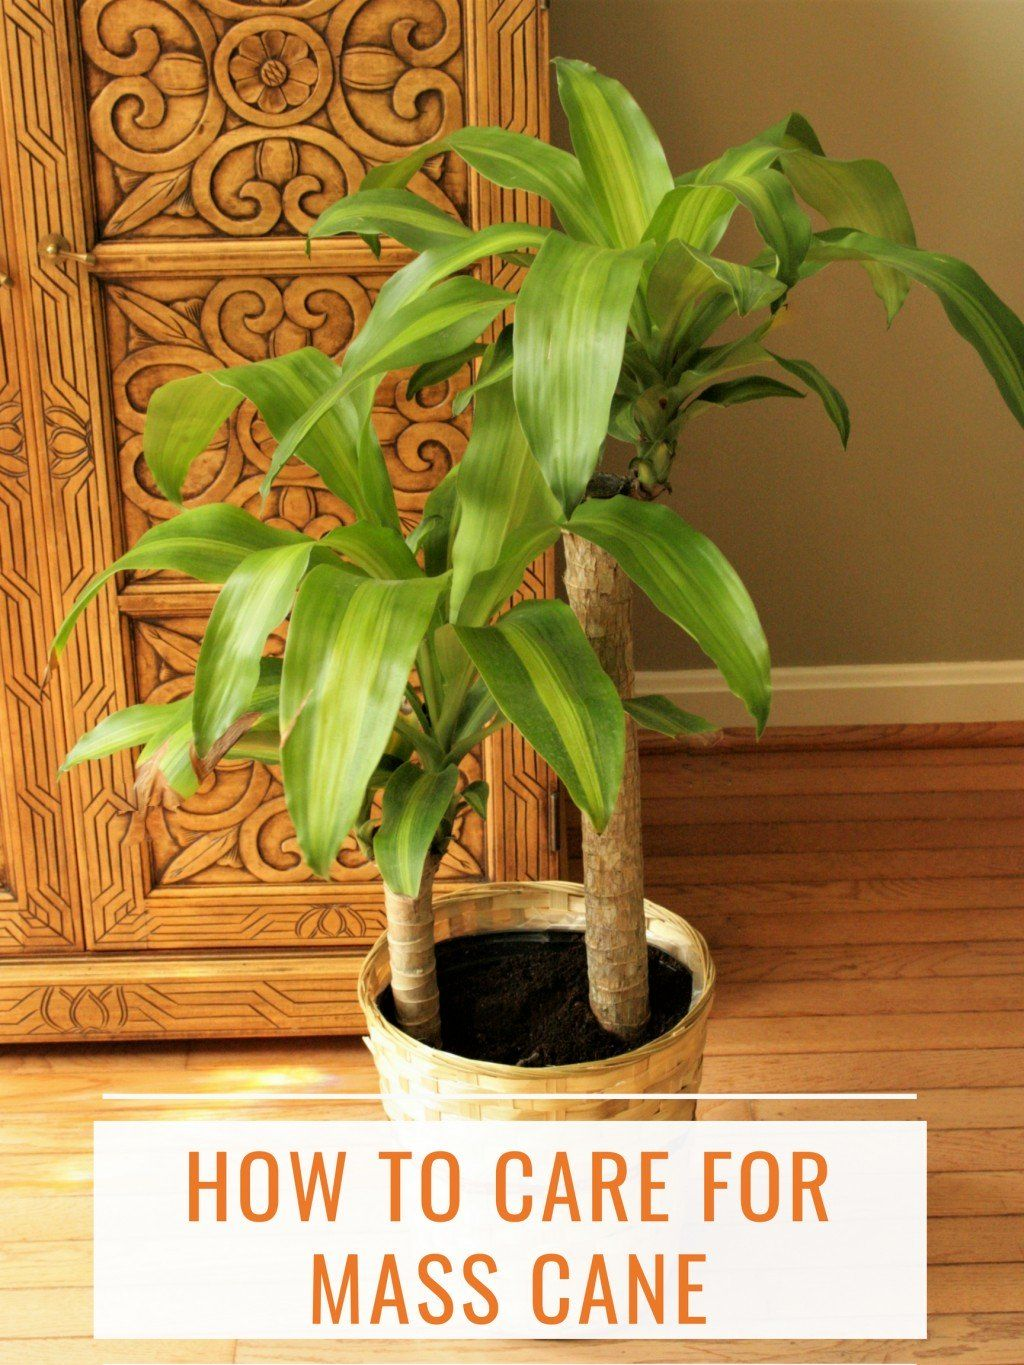 How To Care For Mass Cane A K A Corn Plant Or Dracaena